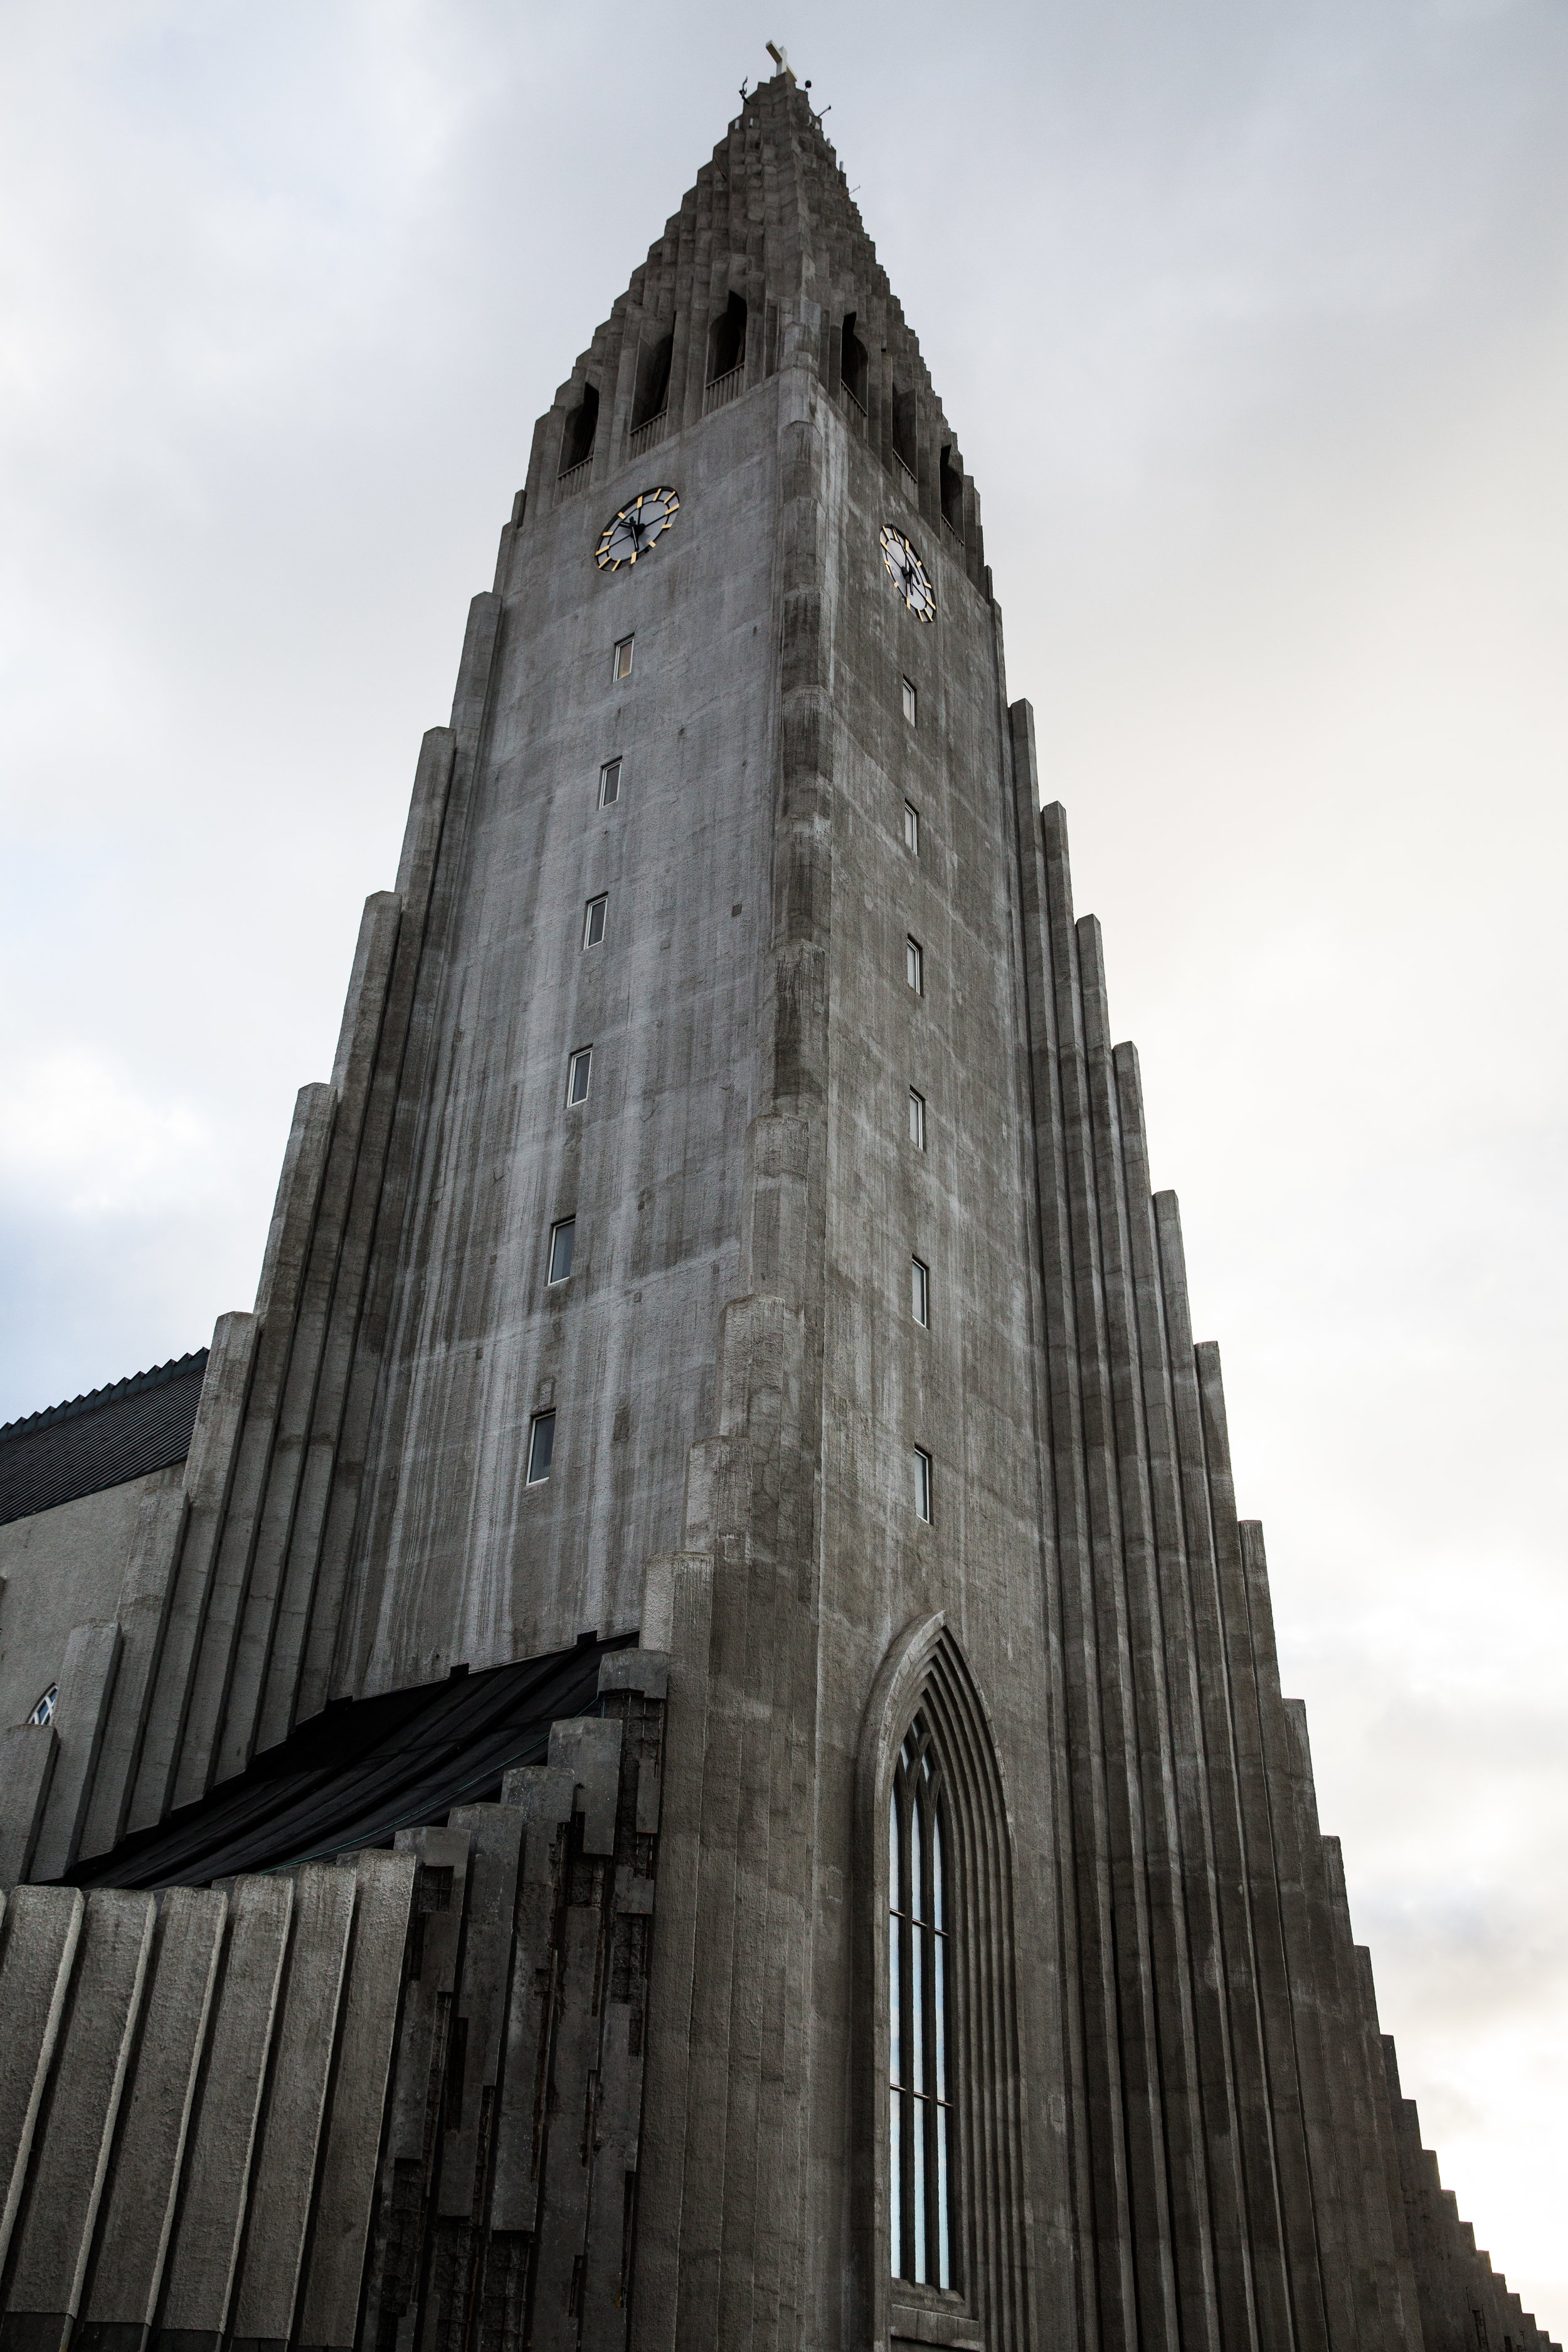 Halgrimskirkja, located in the center of Reykjavik, is a Lutheran parish church named after the poet and clergyman Hallgrimur Petursson. Commissioned in 1937 by State Architect Guðjón Samúelsson, is was inspired by the basalt lava flows throughout Iceland. Starting in 1945, the church was finally completed in 1986.